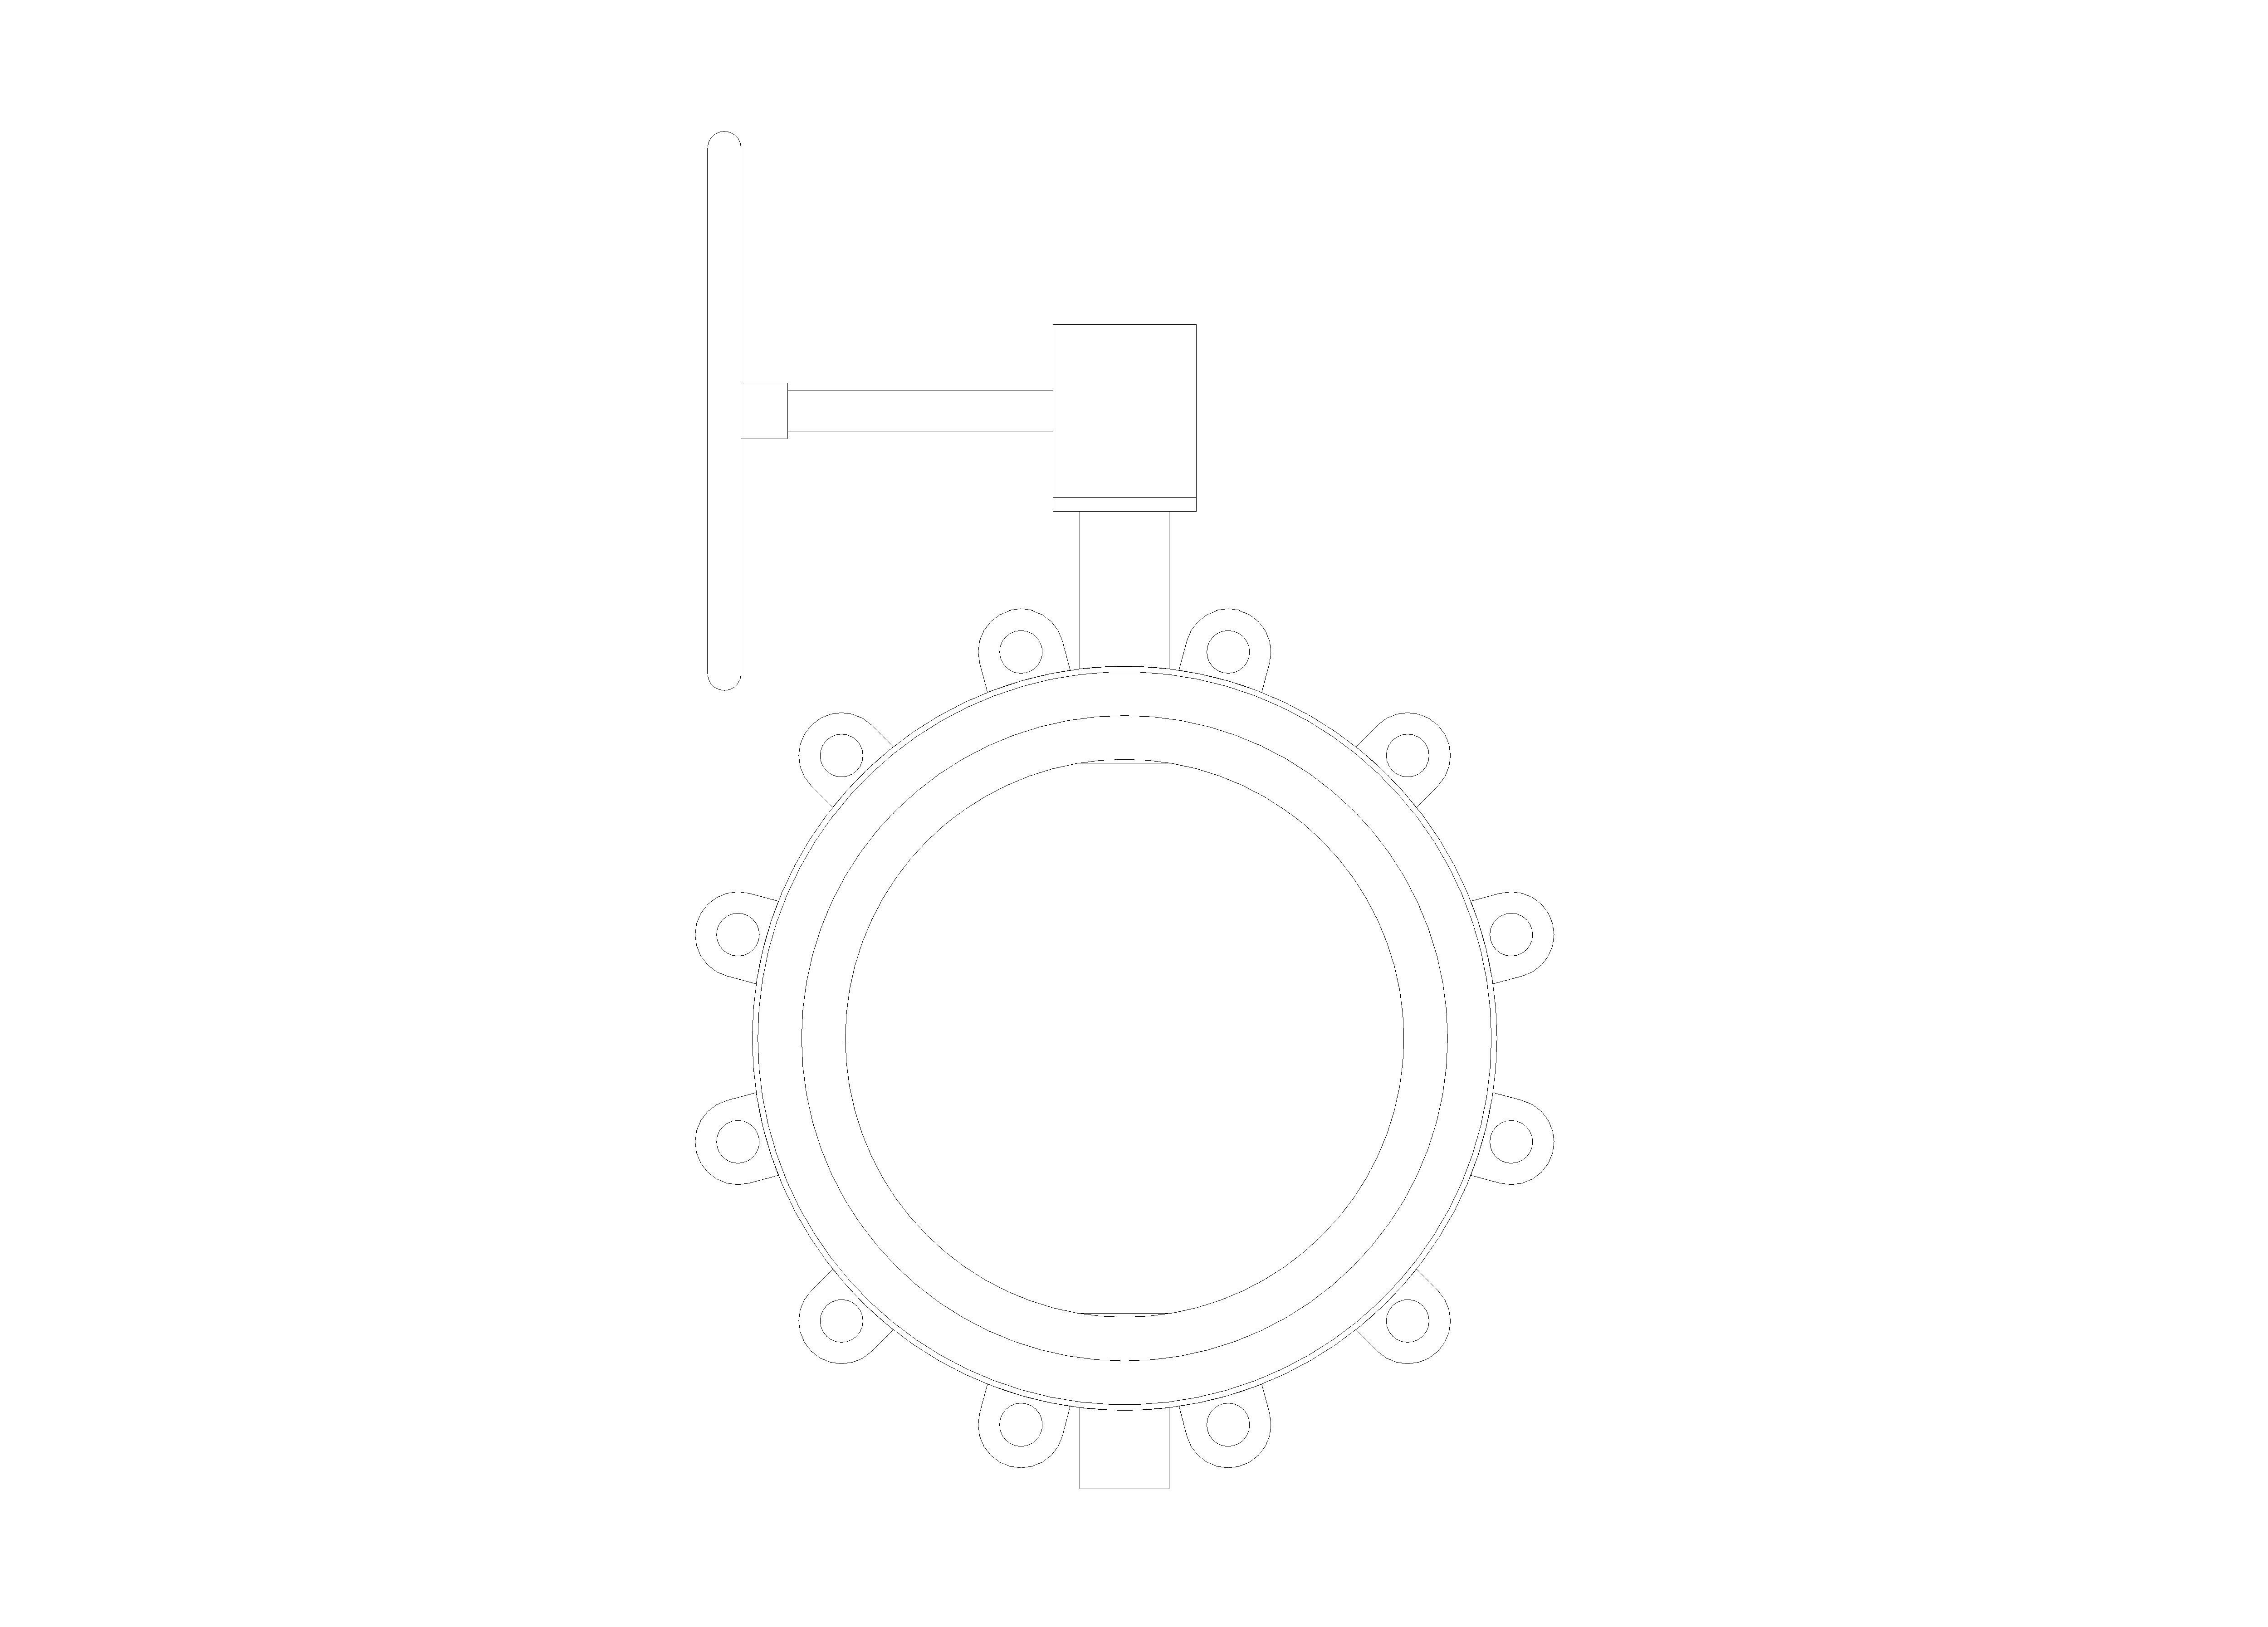 Image of Butterfly Valve Ductile Iron Fully Lugged Gearbox Operated - Fig 4970G